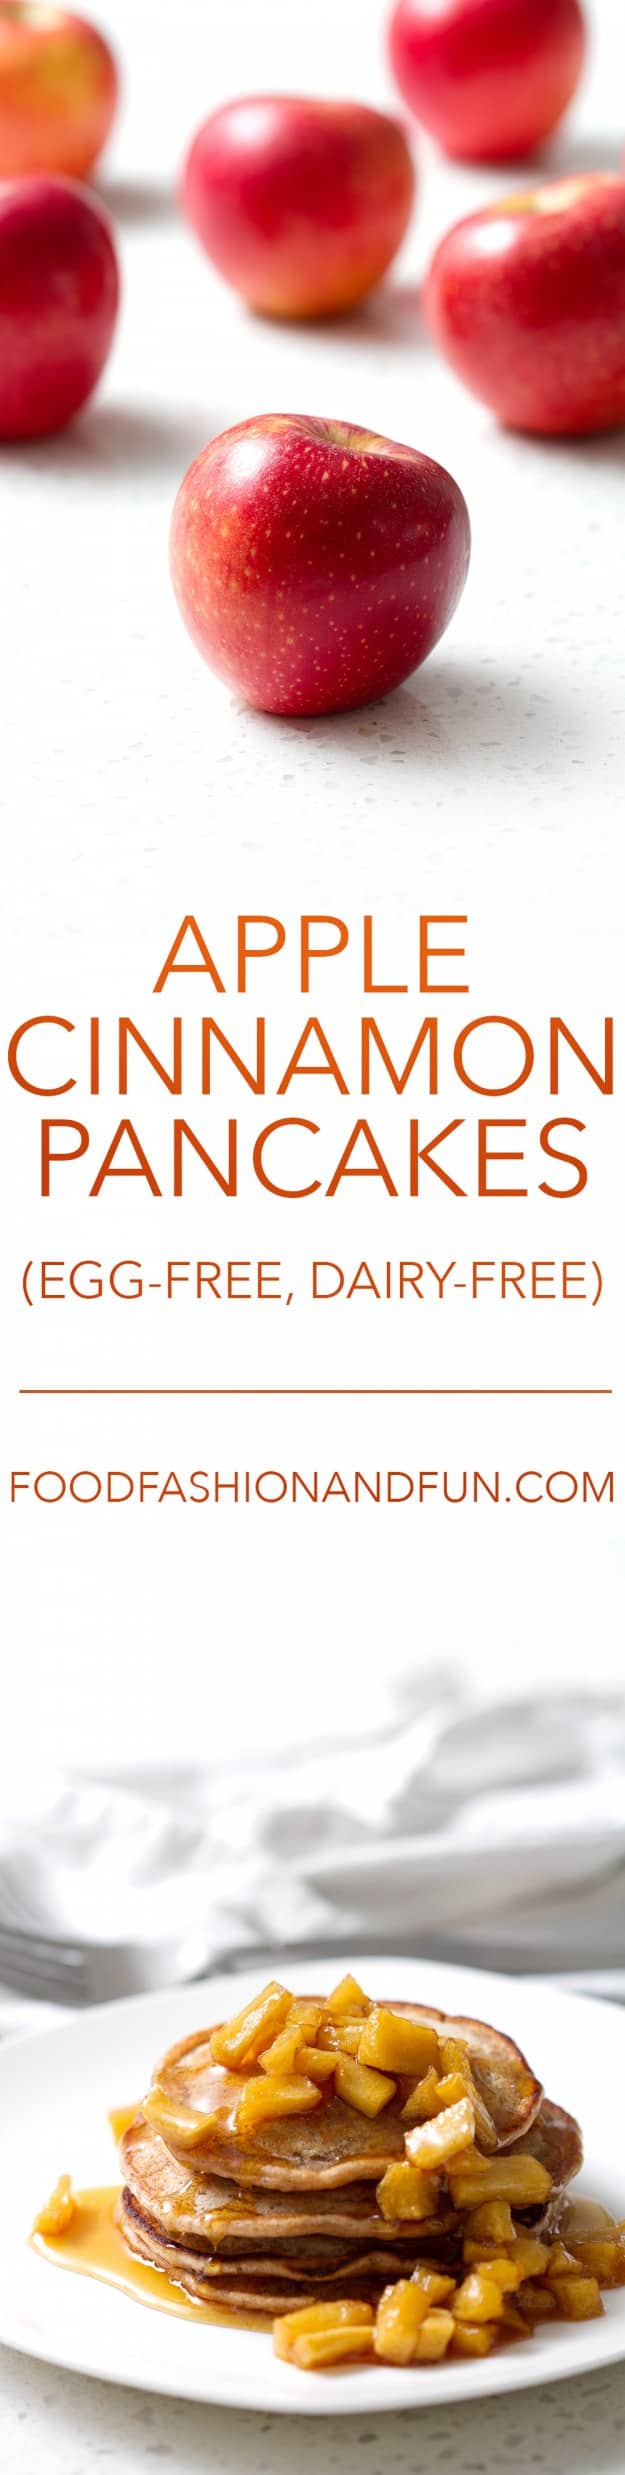 Apple Cinnamon Pancakes with Cooked Spiced Apples (egg-free, dairy-free)